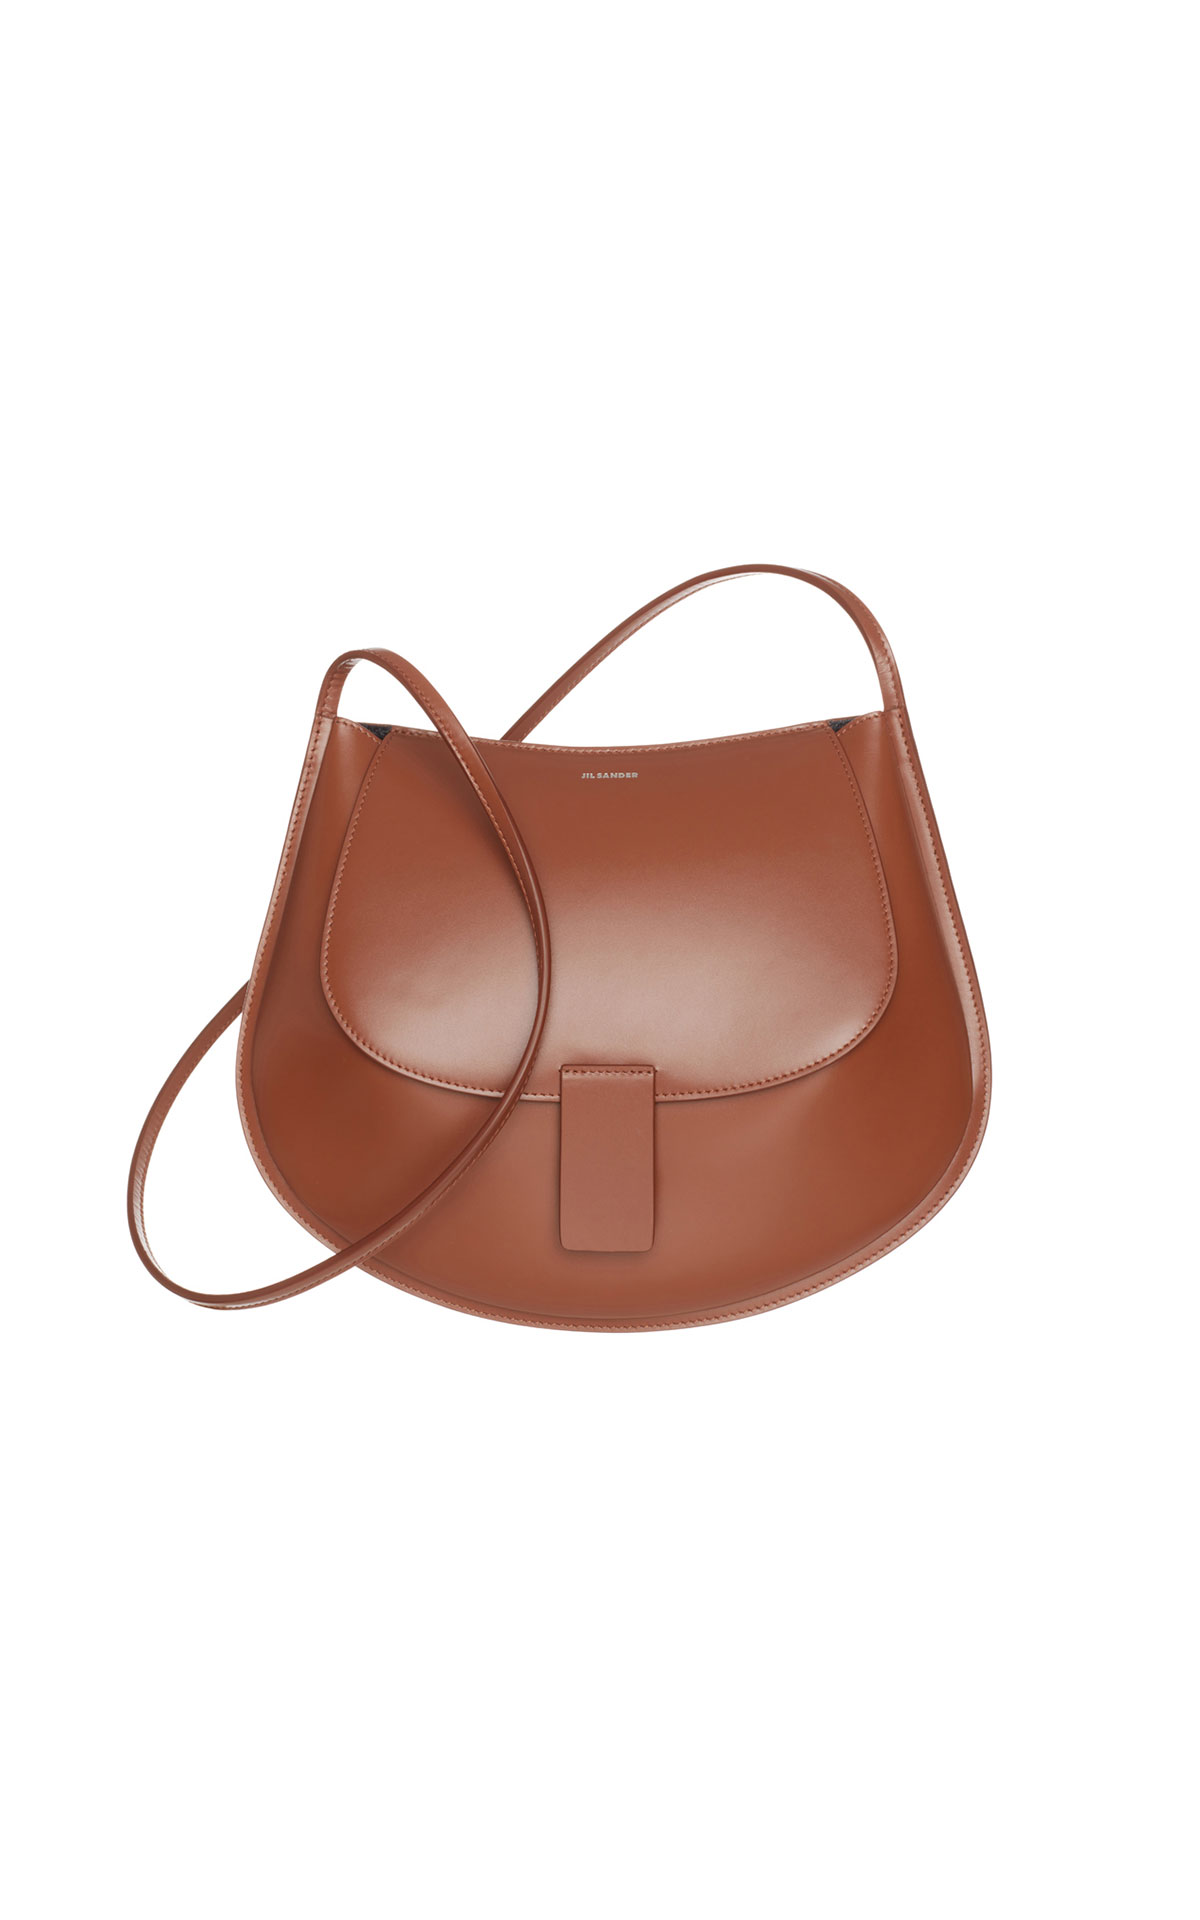 Jil Sander Crescent SM bag in brown from Bicester Village